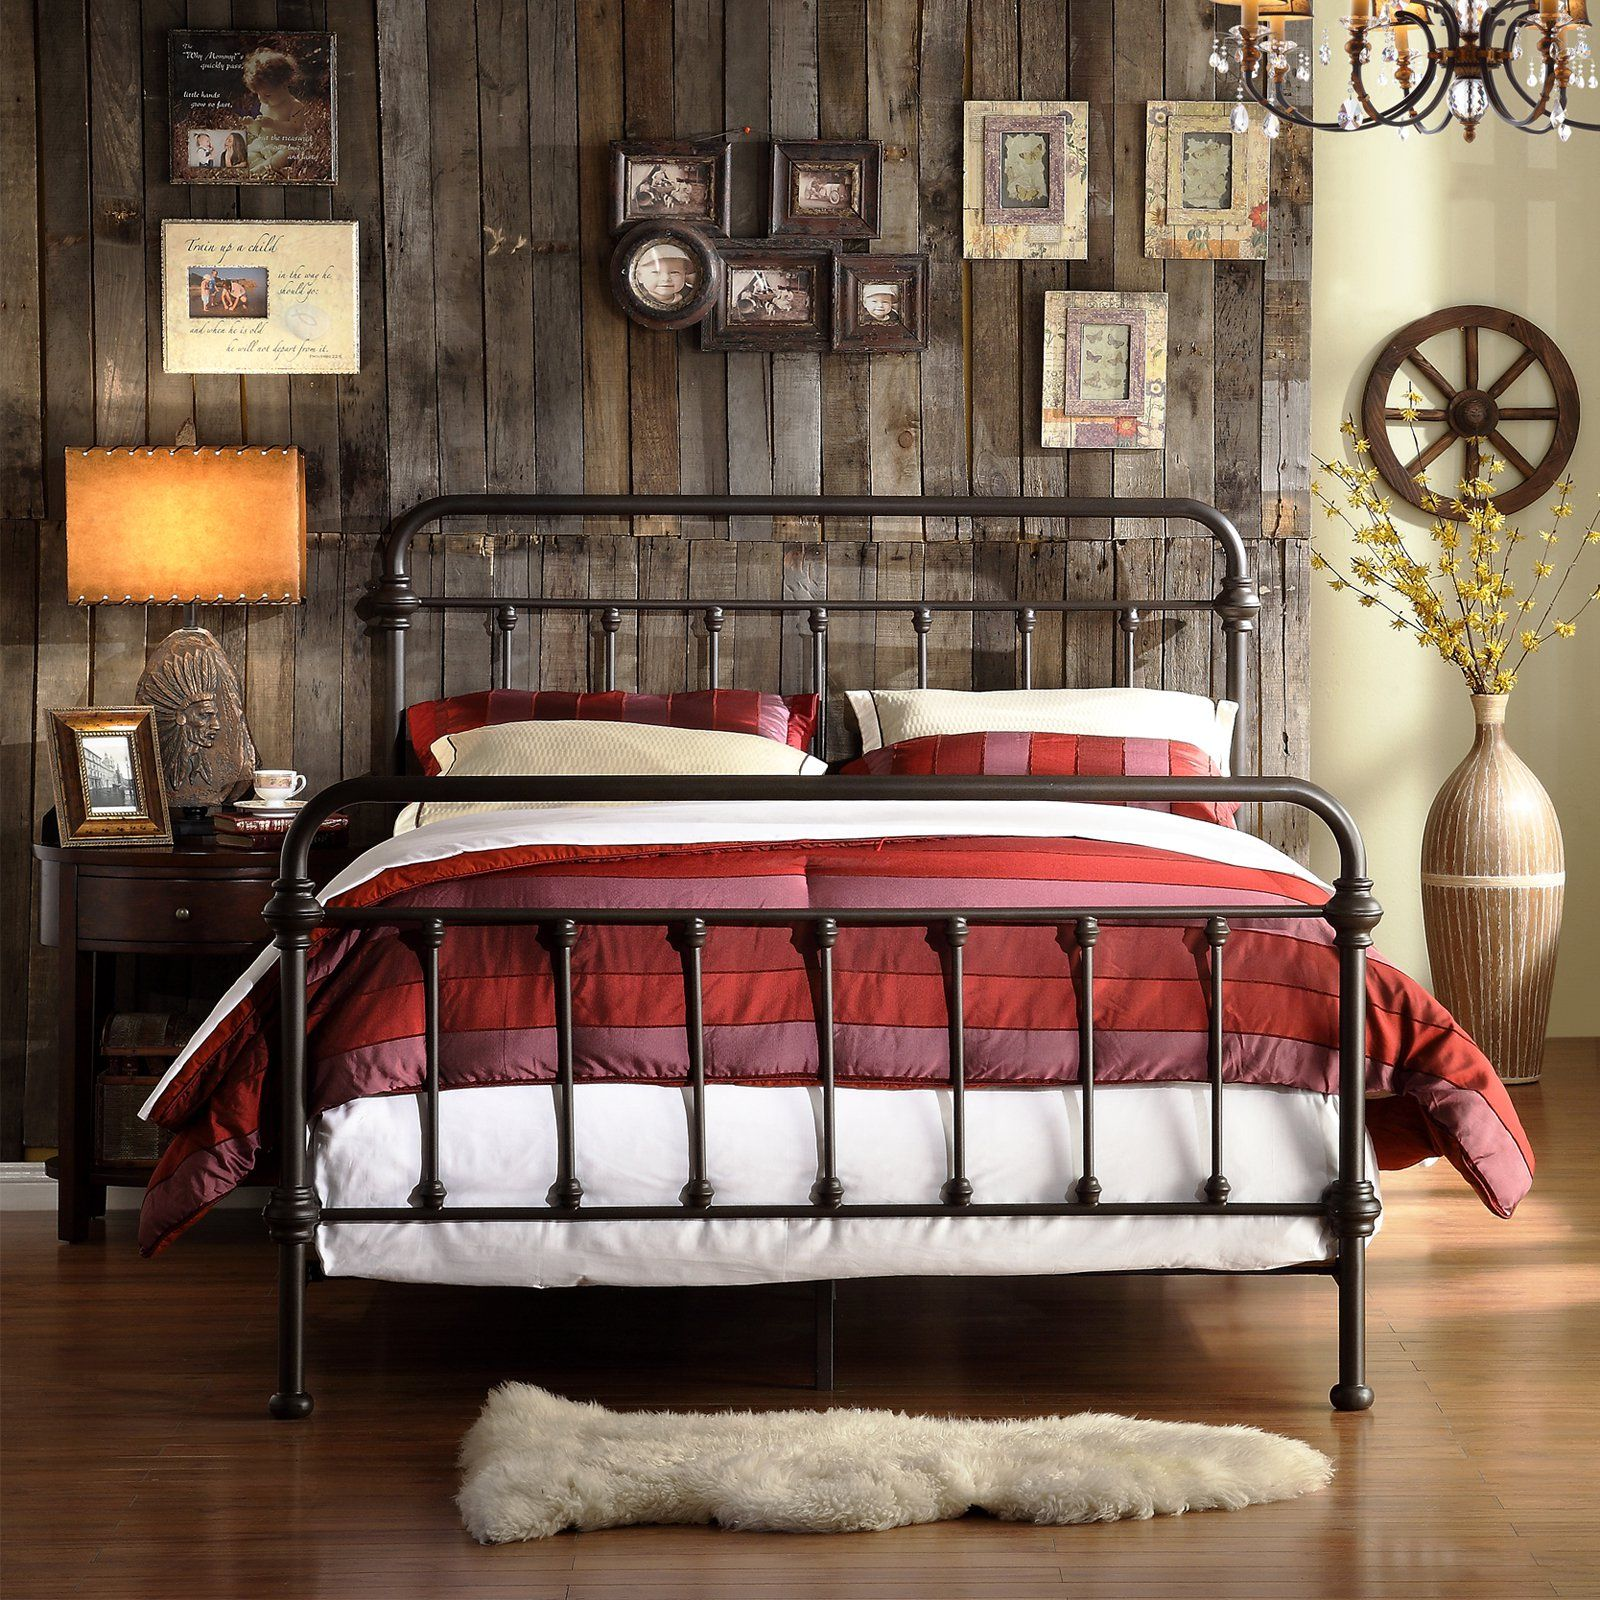 Weston Home Nottingham Metal Spindle Bed Home Iron Bed Frame